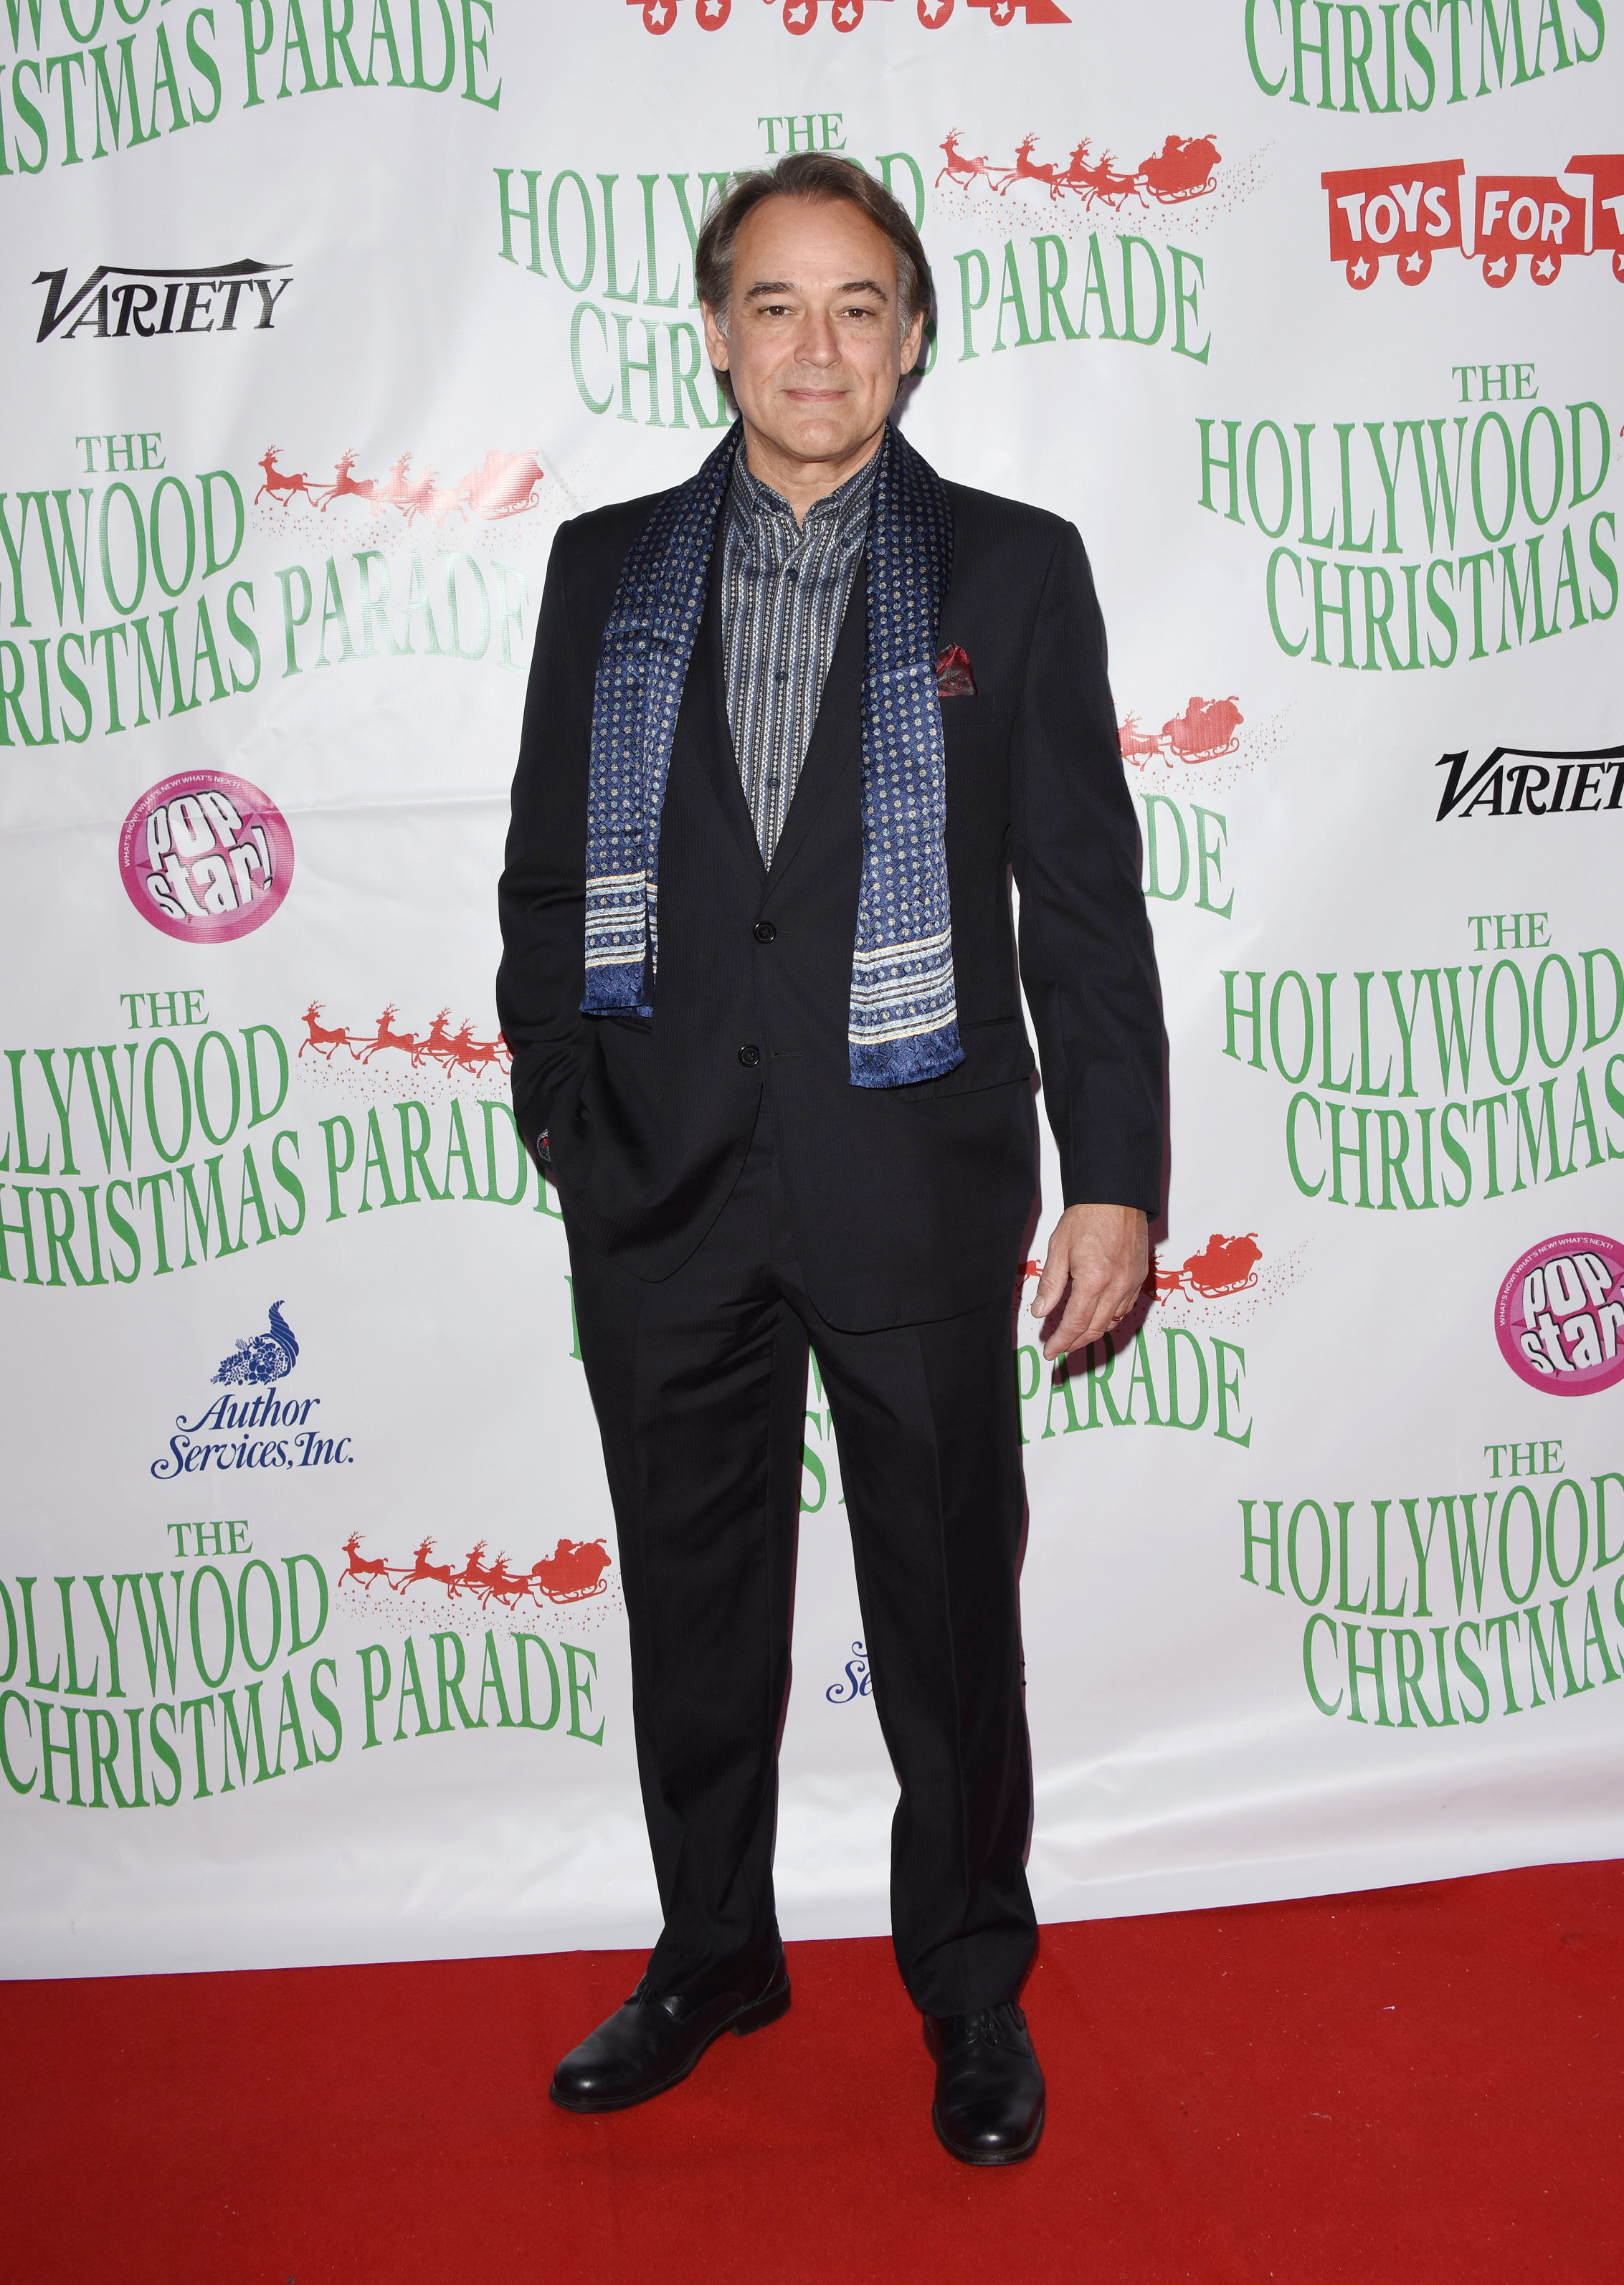 Jon Lindstrom attends the 88th annual Hollywood Christmas Parade